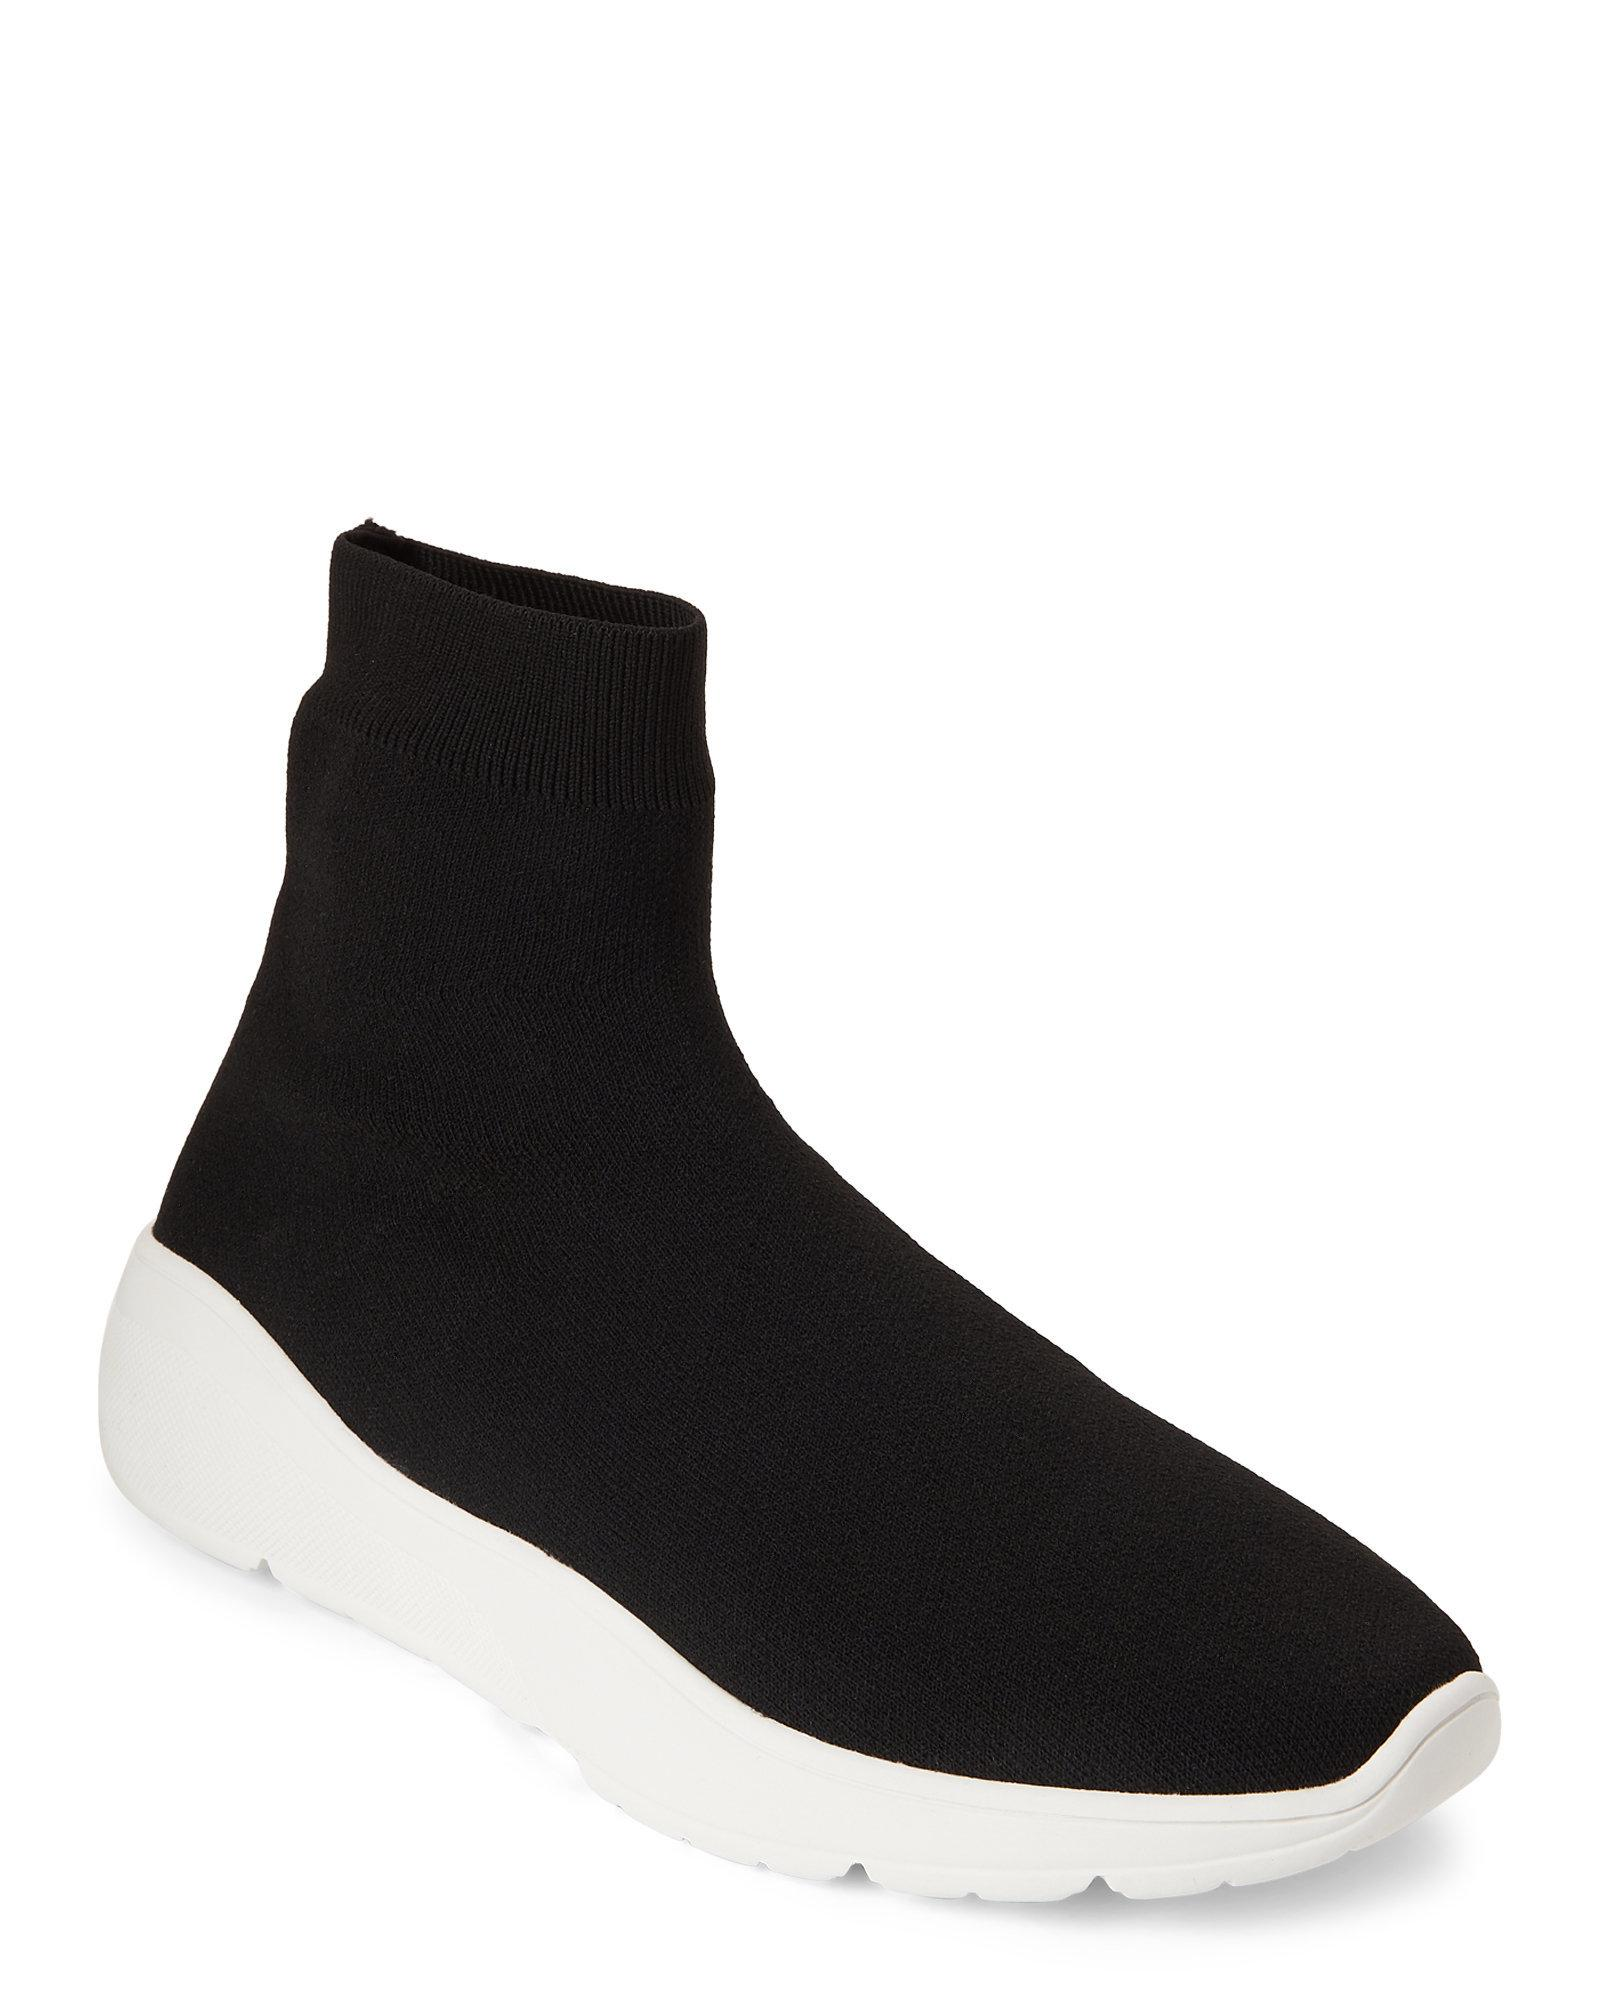 aec2fd70cab Lyst - Steve Madden Black Flex Knit Sock Sneakers in Black